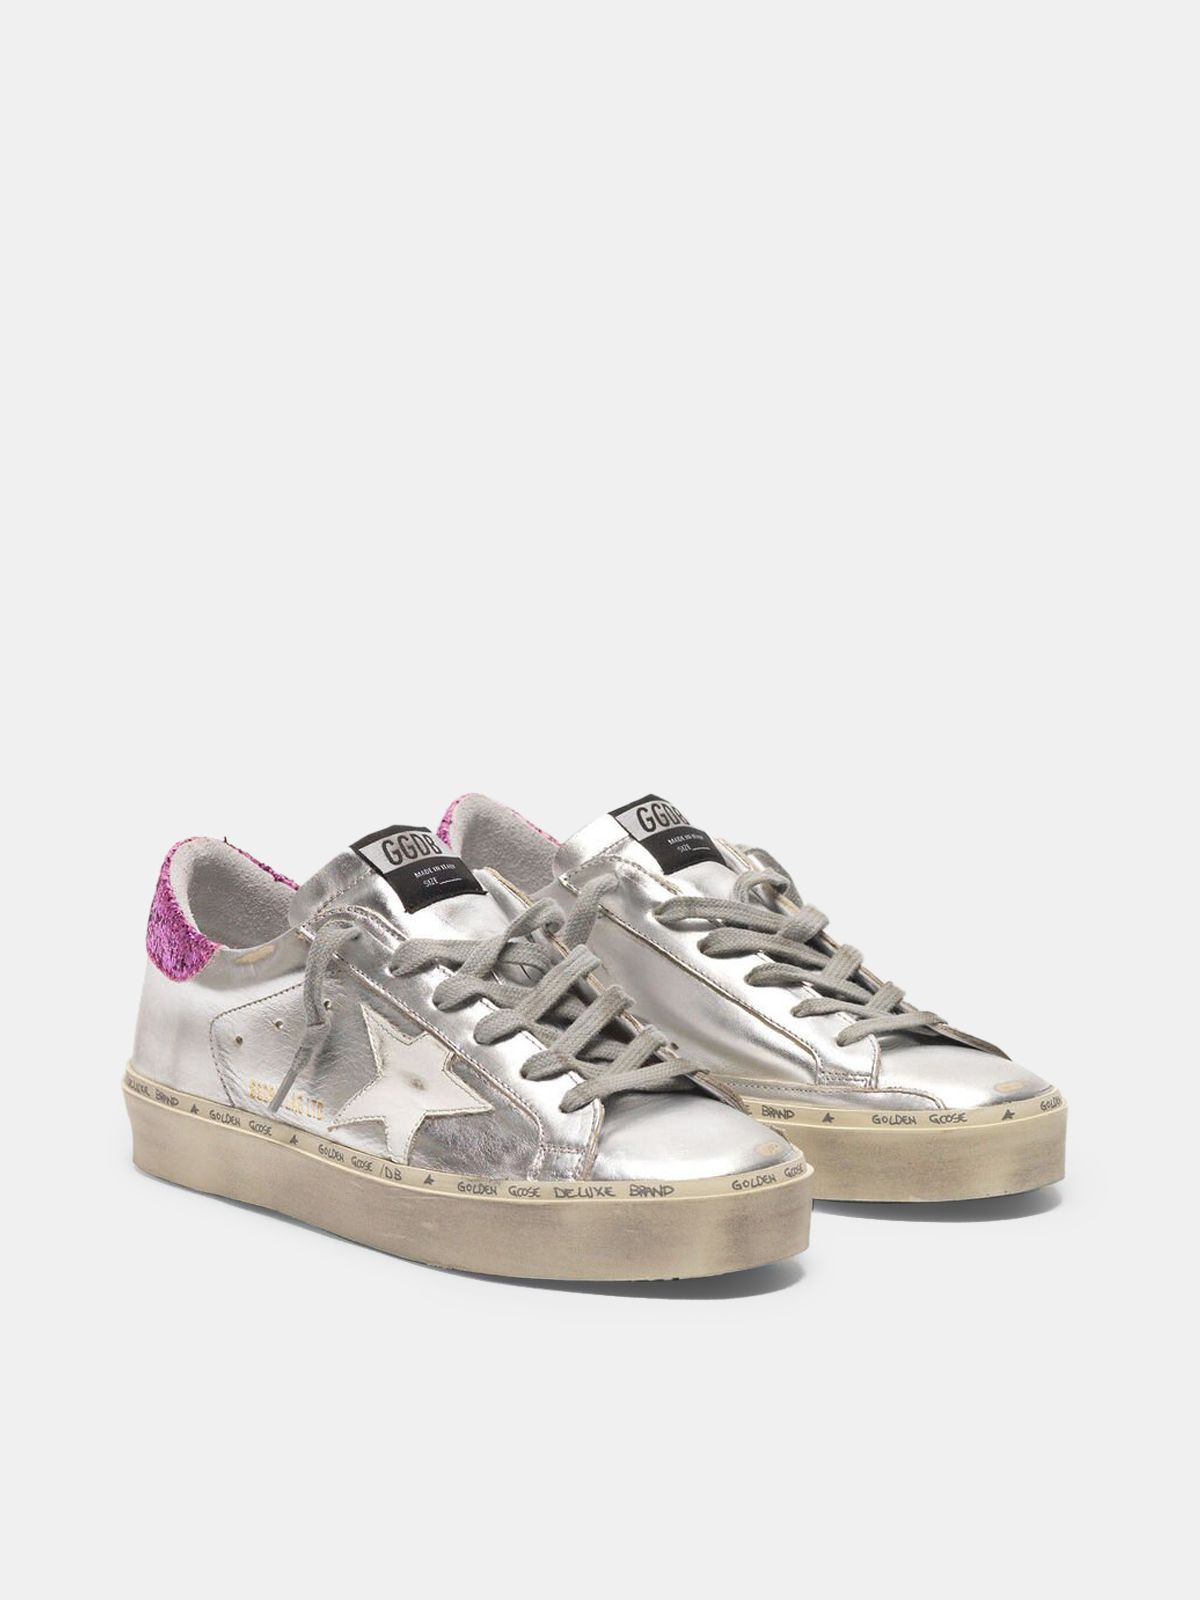 Golden Goose - Hi-Star white and gold sneakers with sparkle foxing in